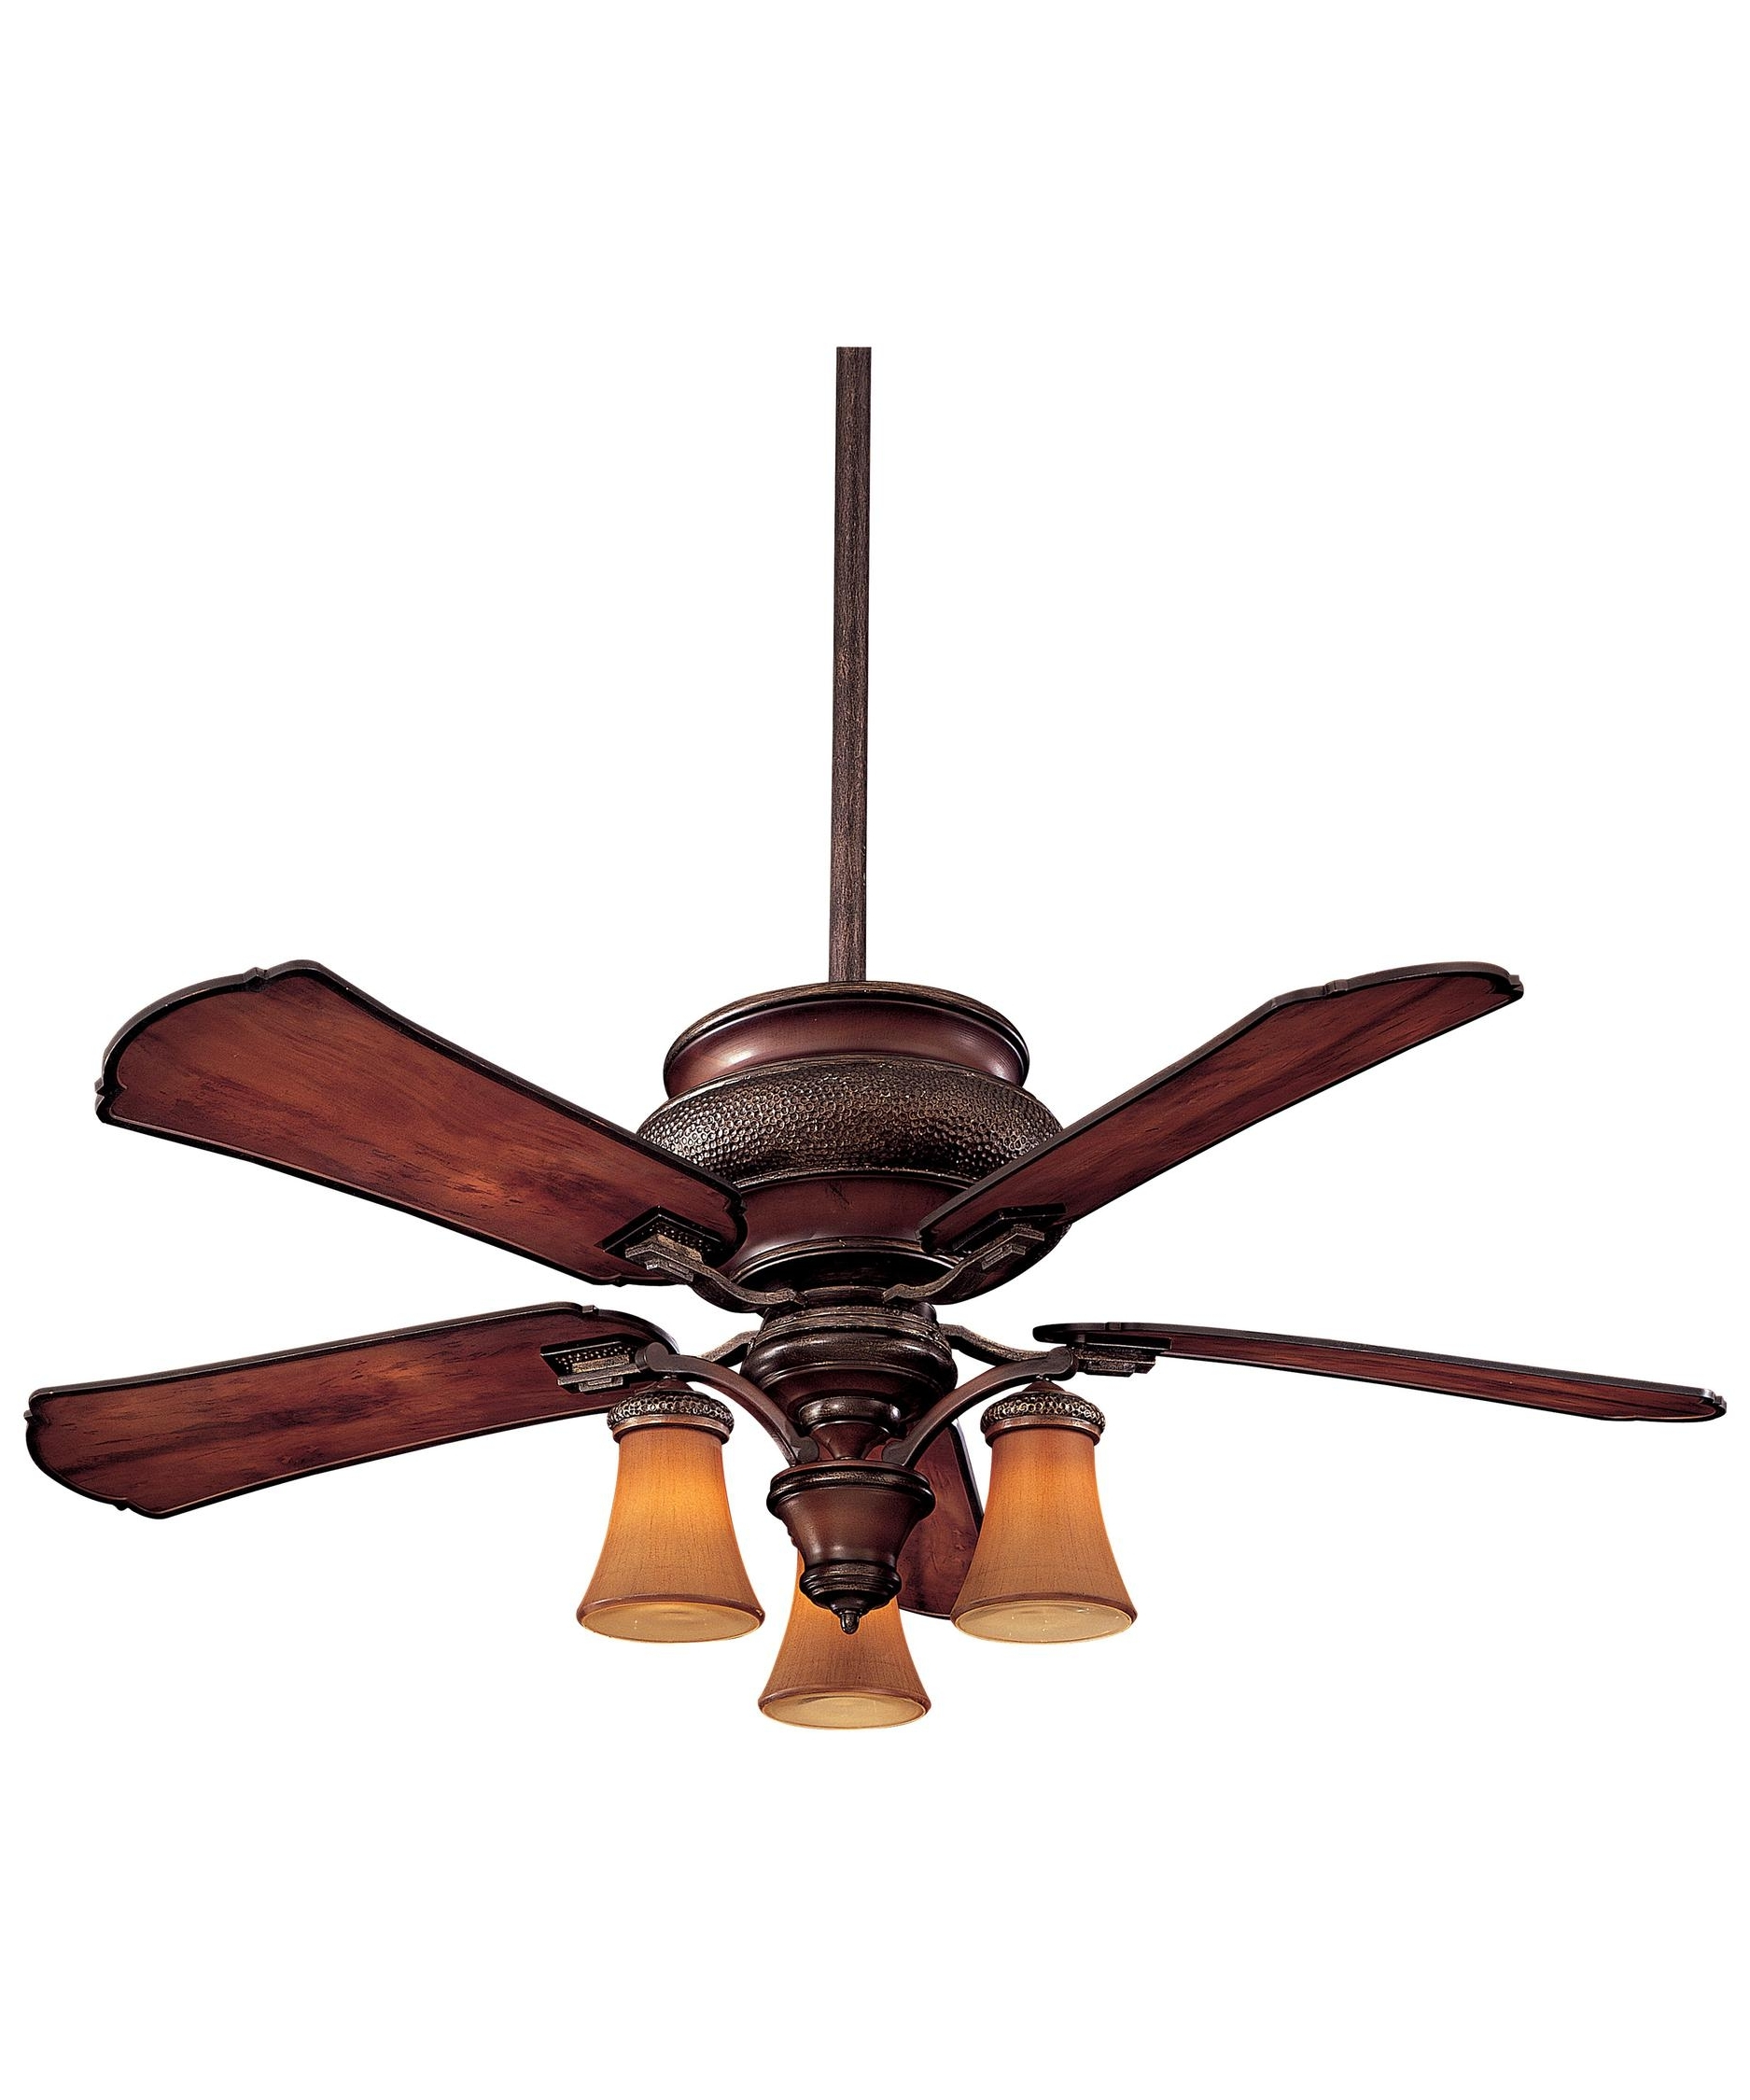 Craftsman Ceiling Fan Light Kit Outstanding Lowes Ceiling Fans With With Regard To 2019 Mission Style Outdoor Ceiling Fans With Lights (Gallery 8 of 20)